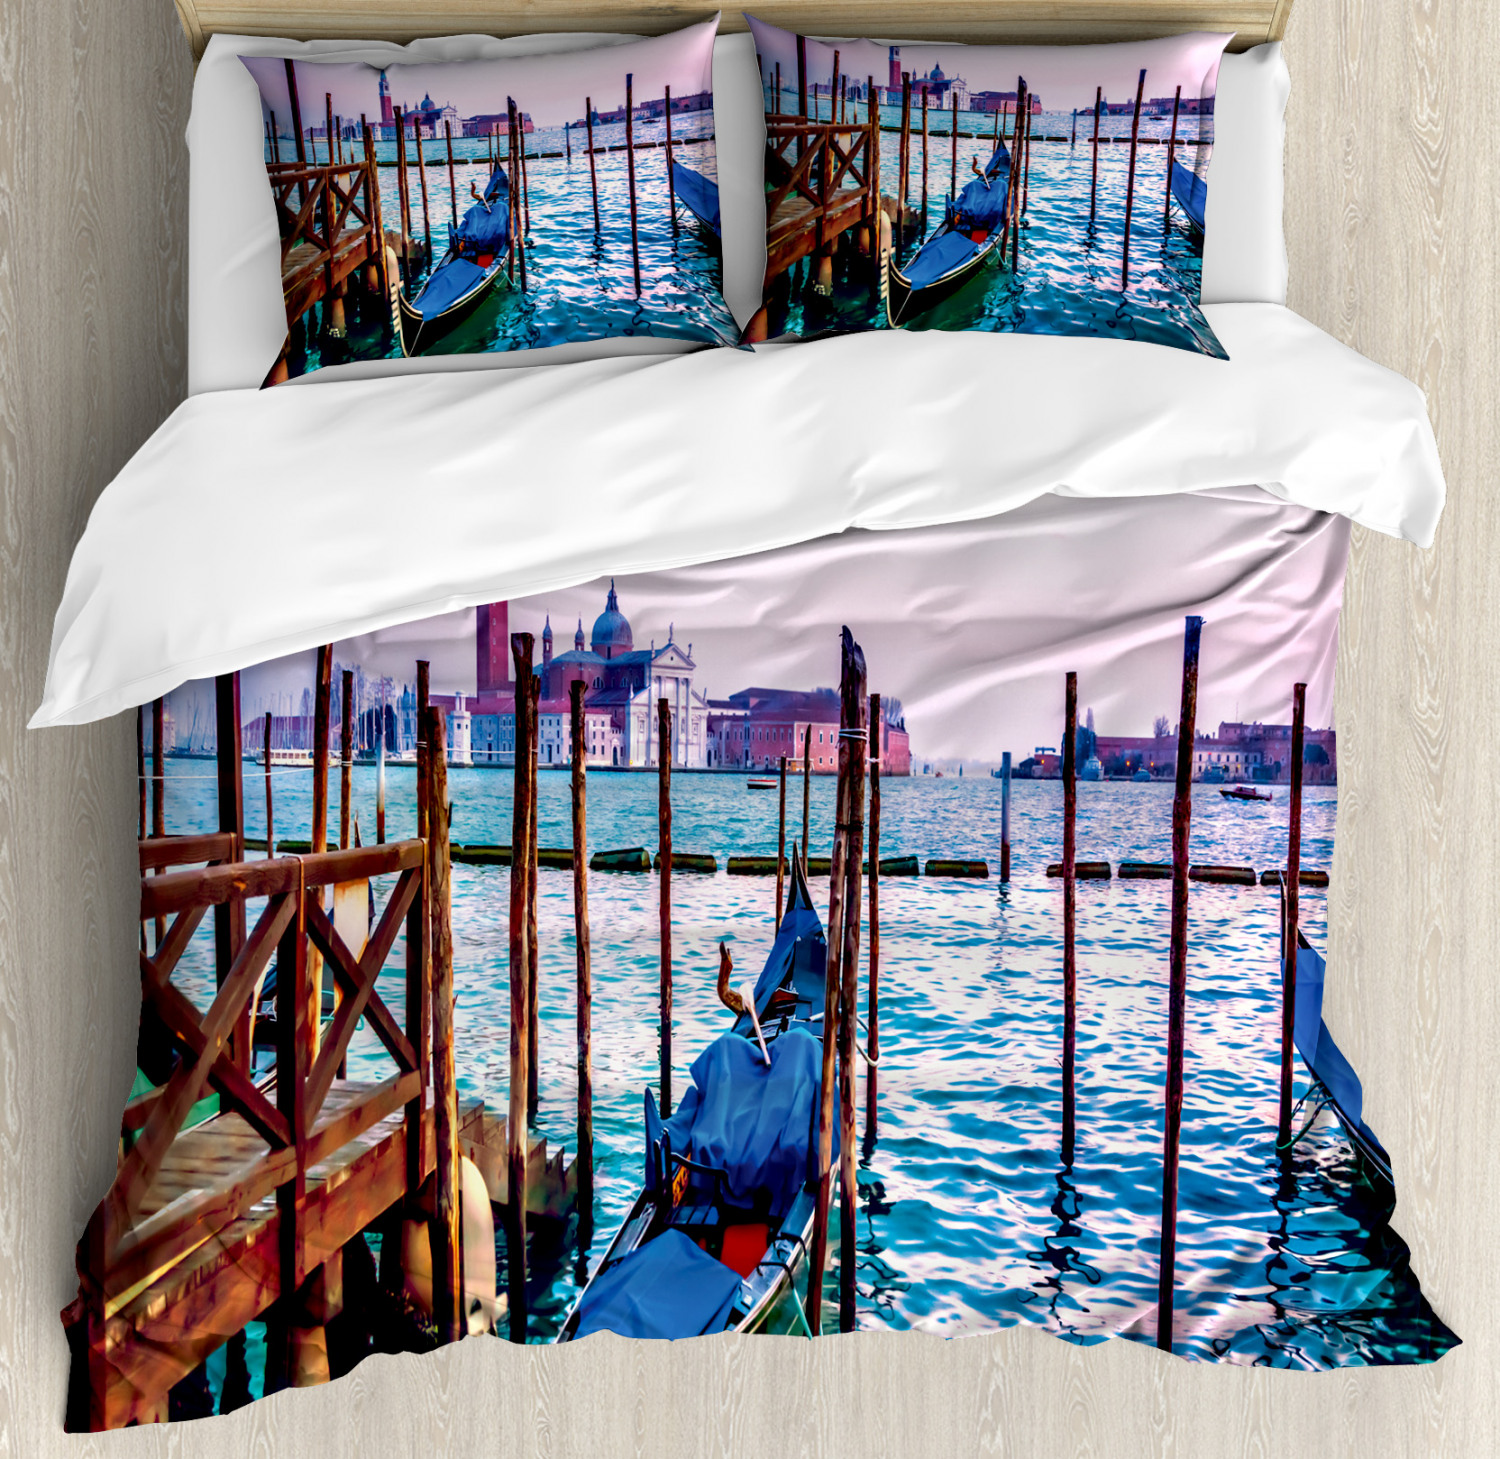 Venice Duvet Cover Set with Pillow Shams Dreamy View in Evening Print